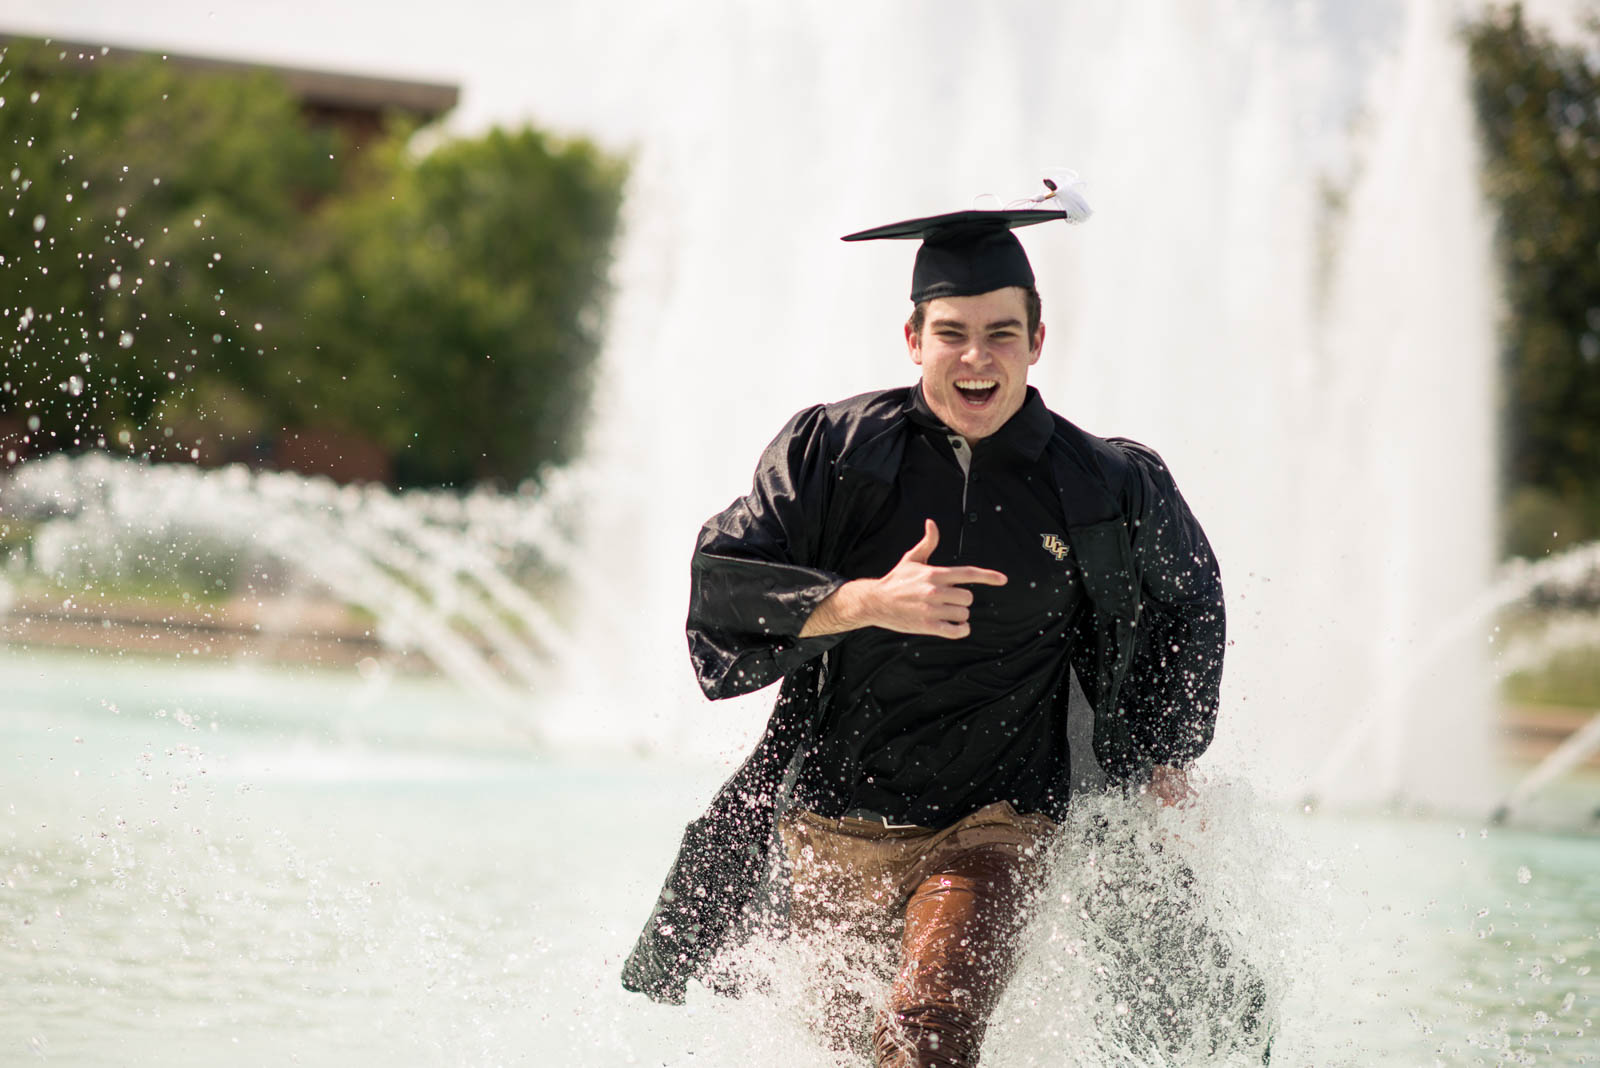 ucf-best-of-photos-graduate-running-through-reflecting-pond